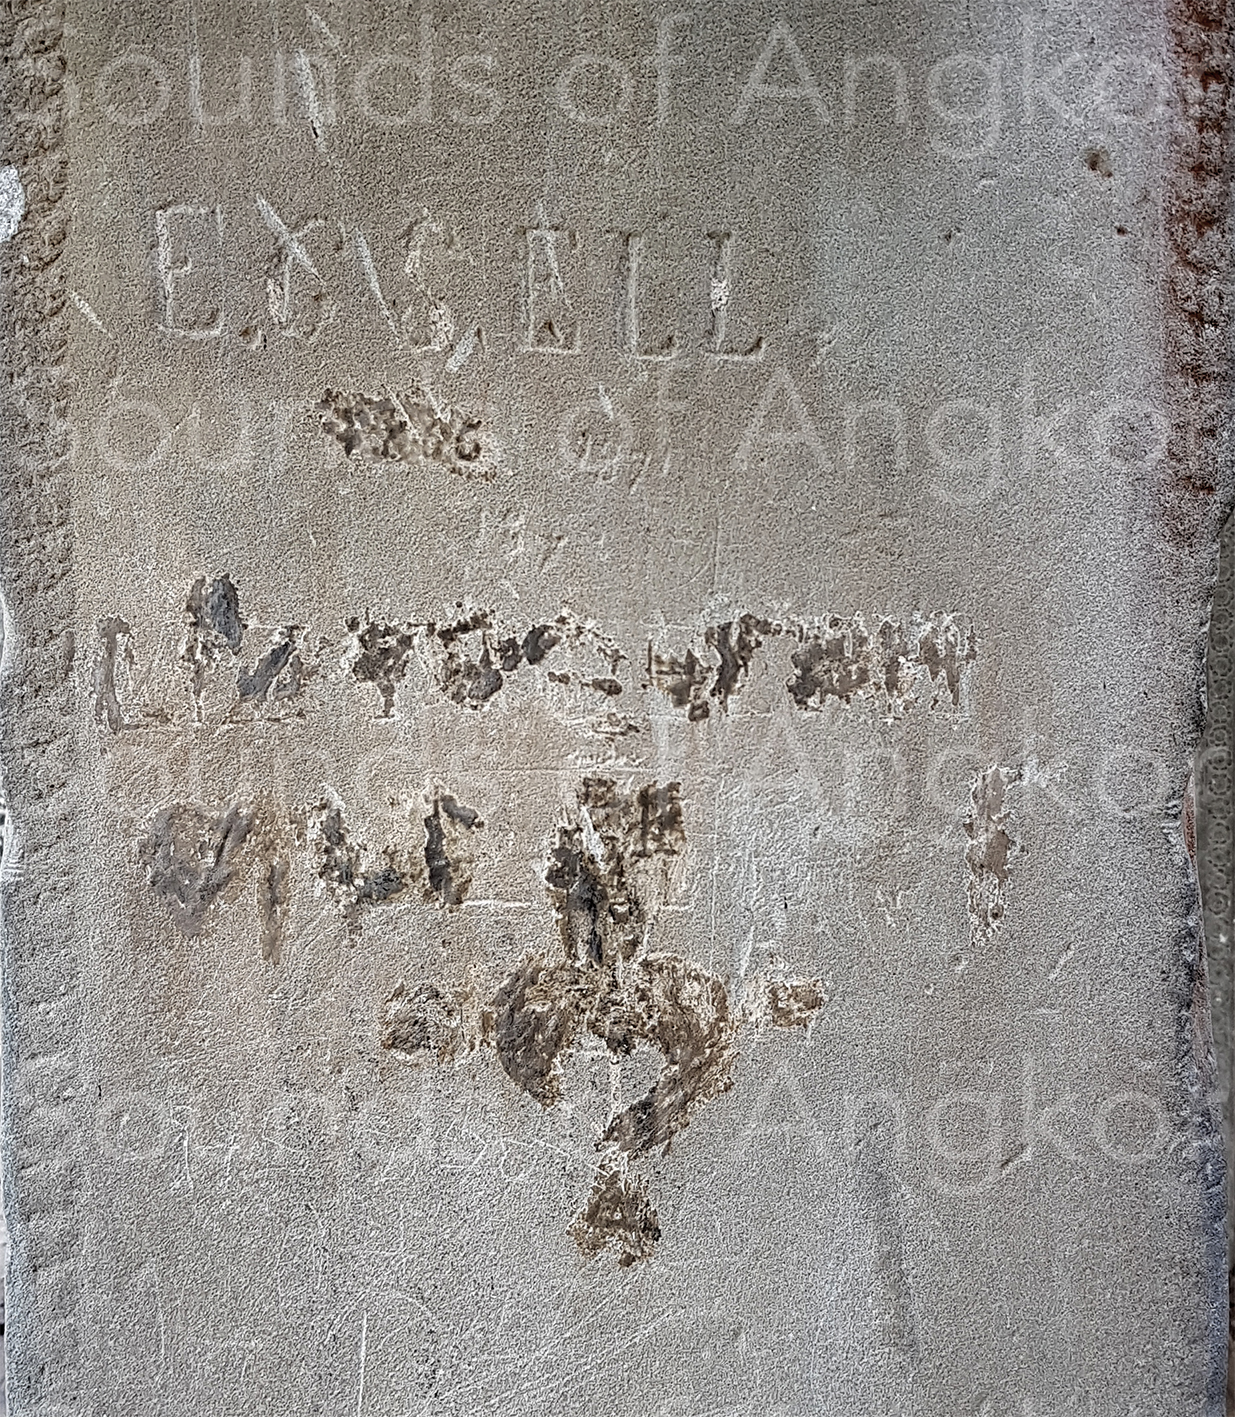 Autograph of Émile Gsell and graffiti covered underneath.